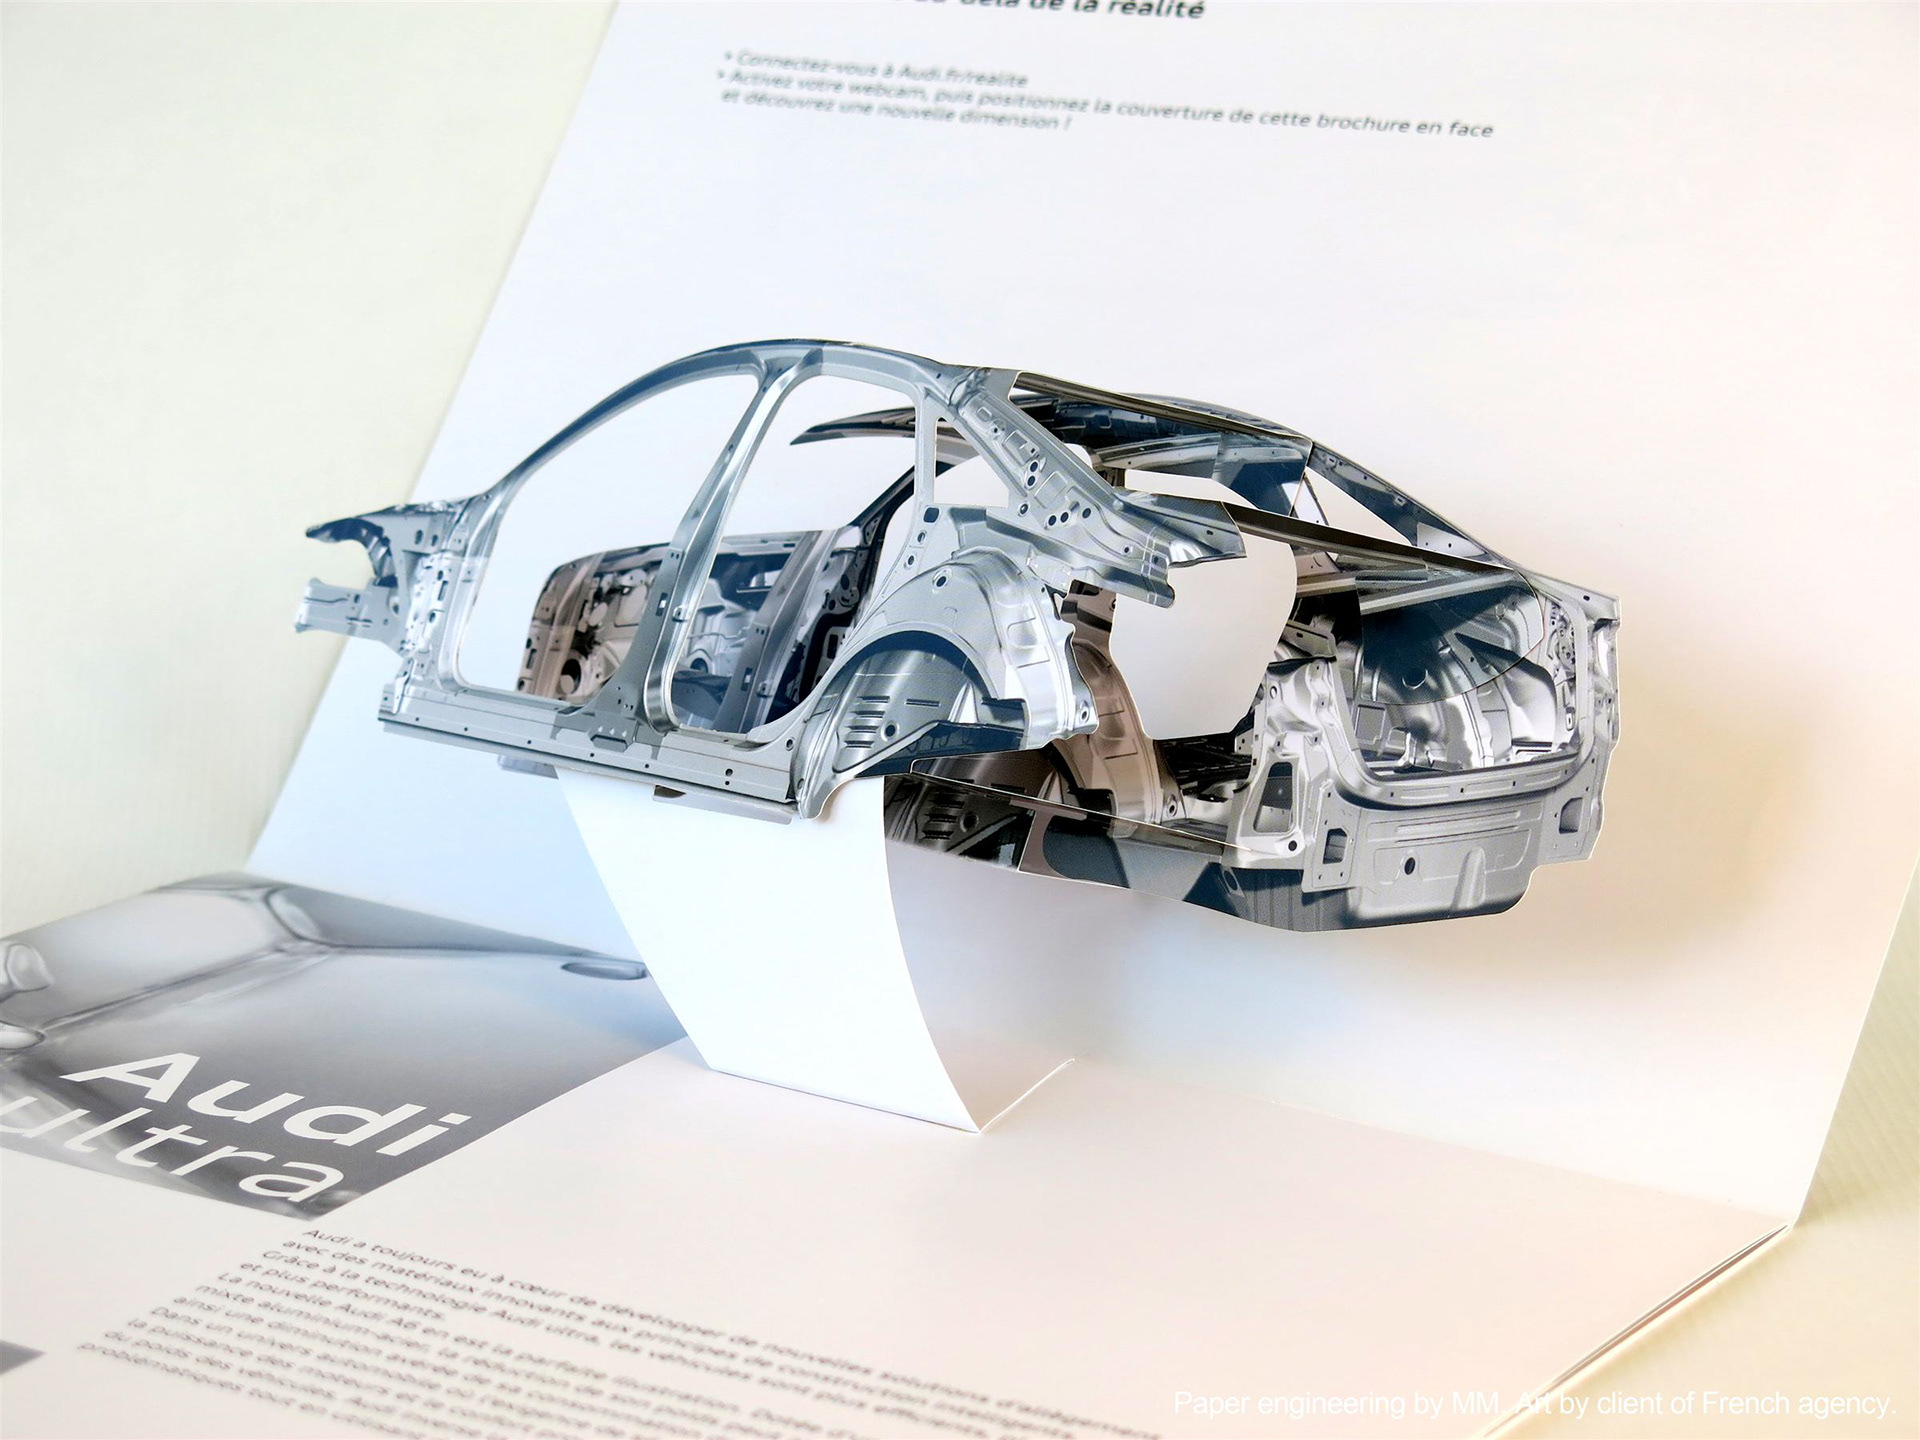 Mike Malkovas paper engineering. - Car frame pop-up.